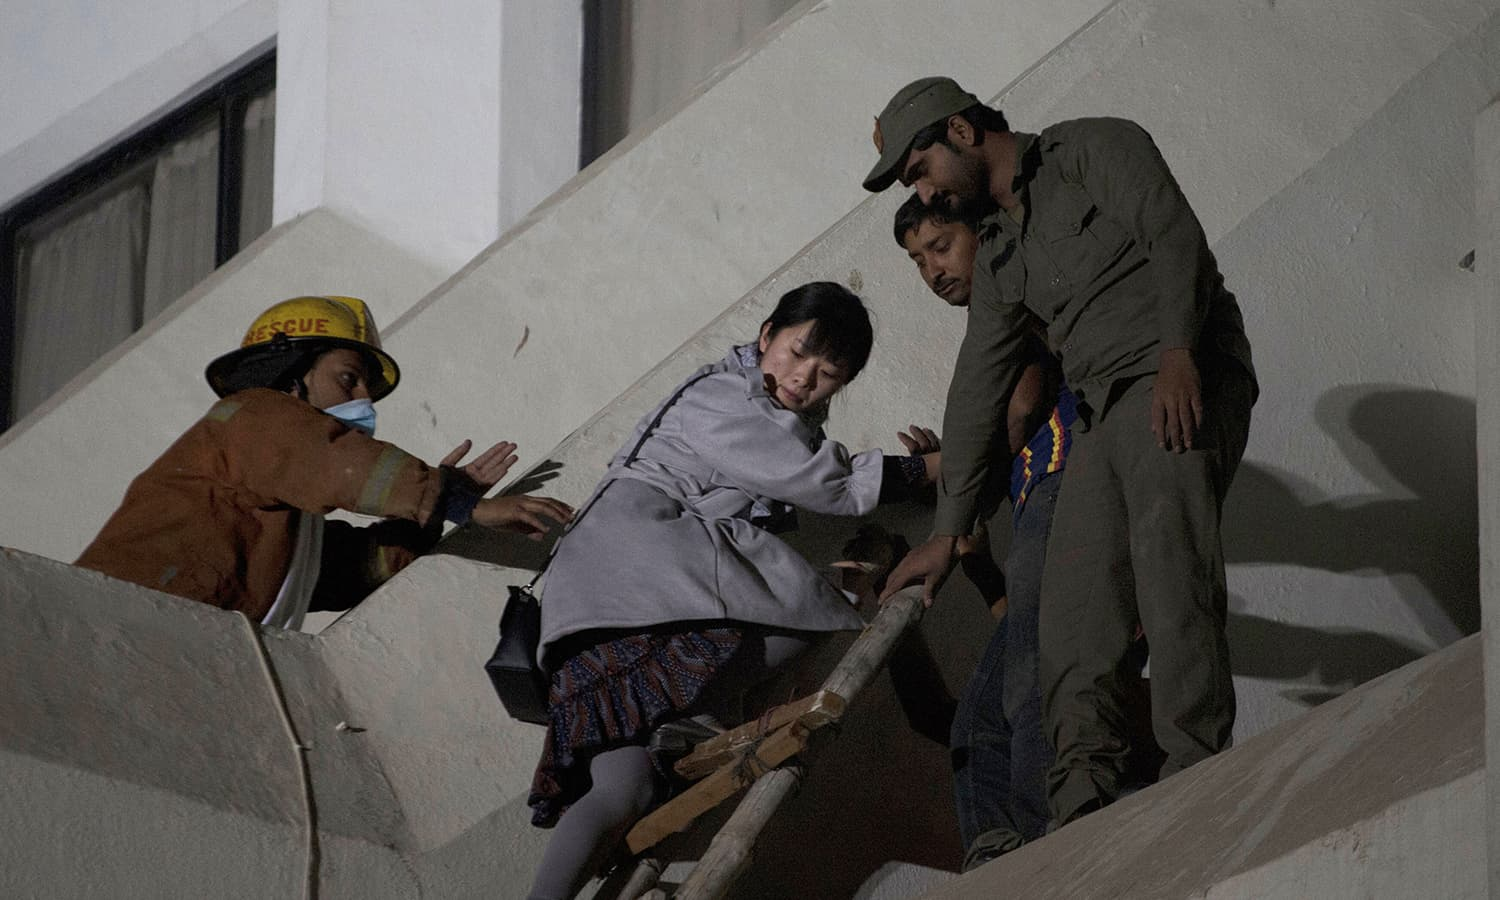 Volunteers help a foreigner in evacuating after the fire. — AFP